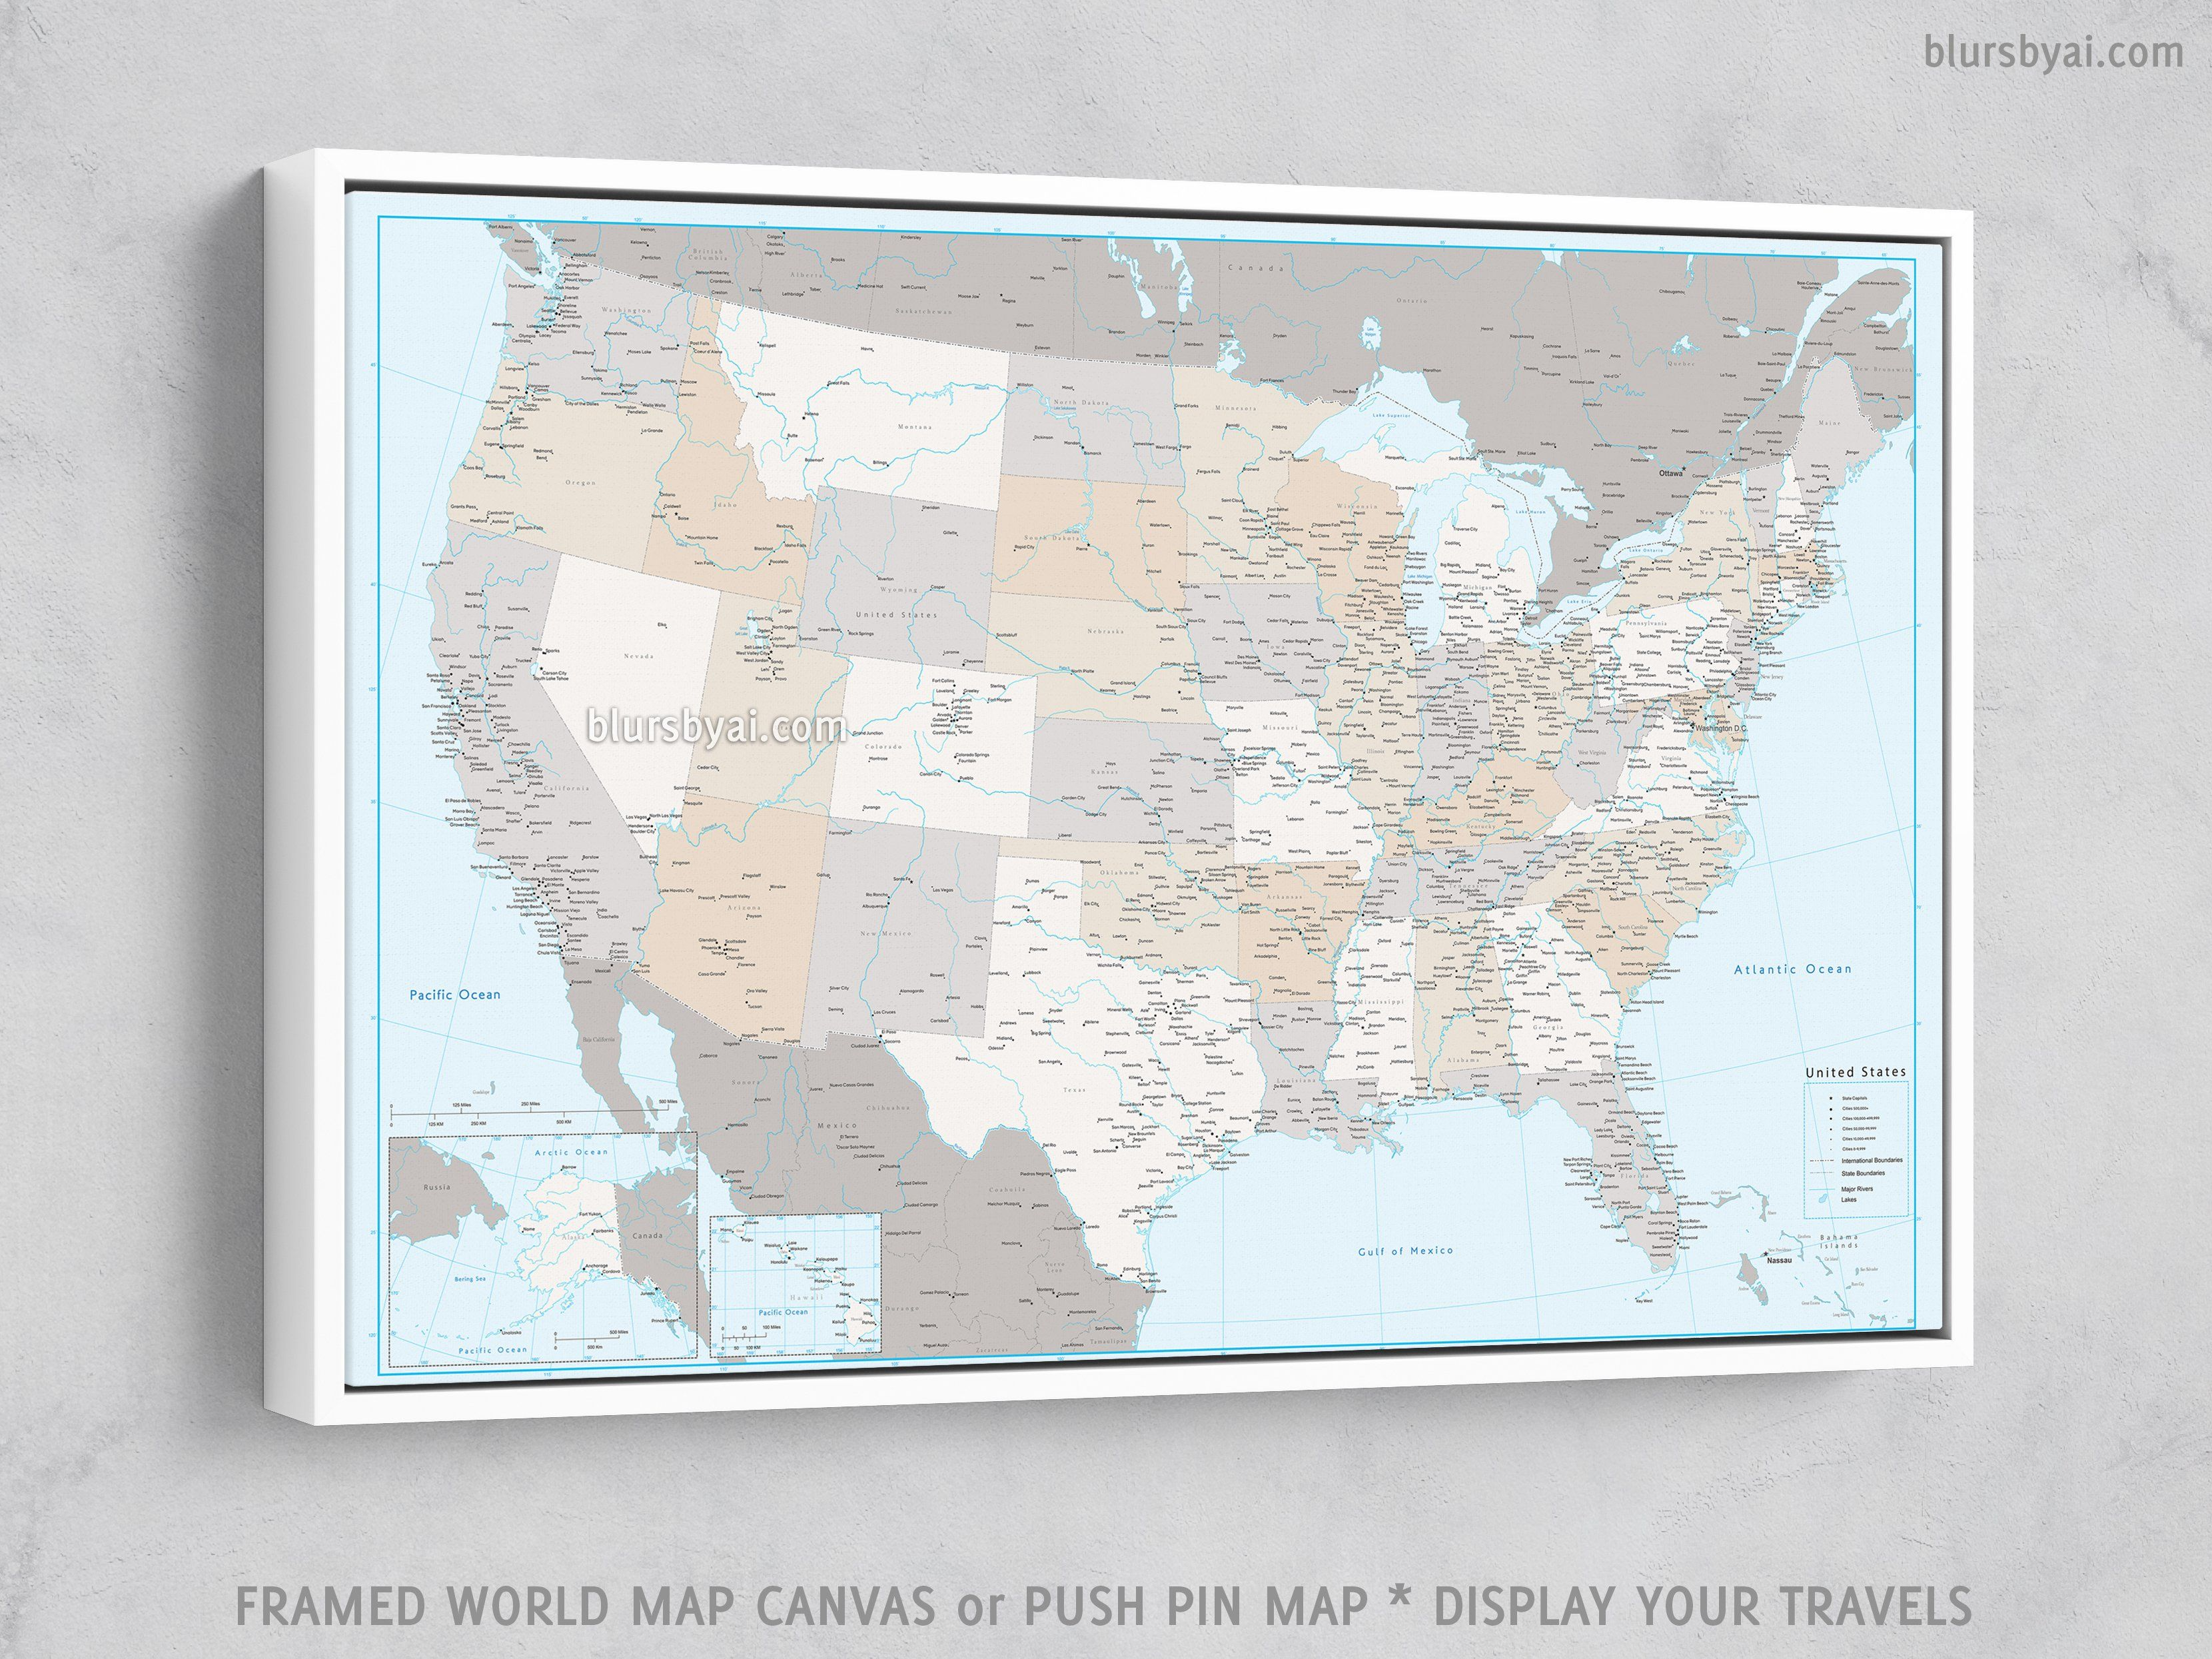 Personalized Usa Map.Personalized Usa Map With Cities Canvas Print Or Push Pin Map In